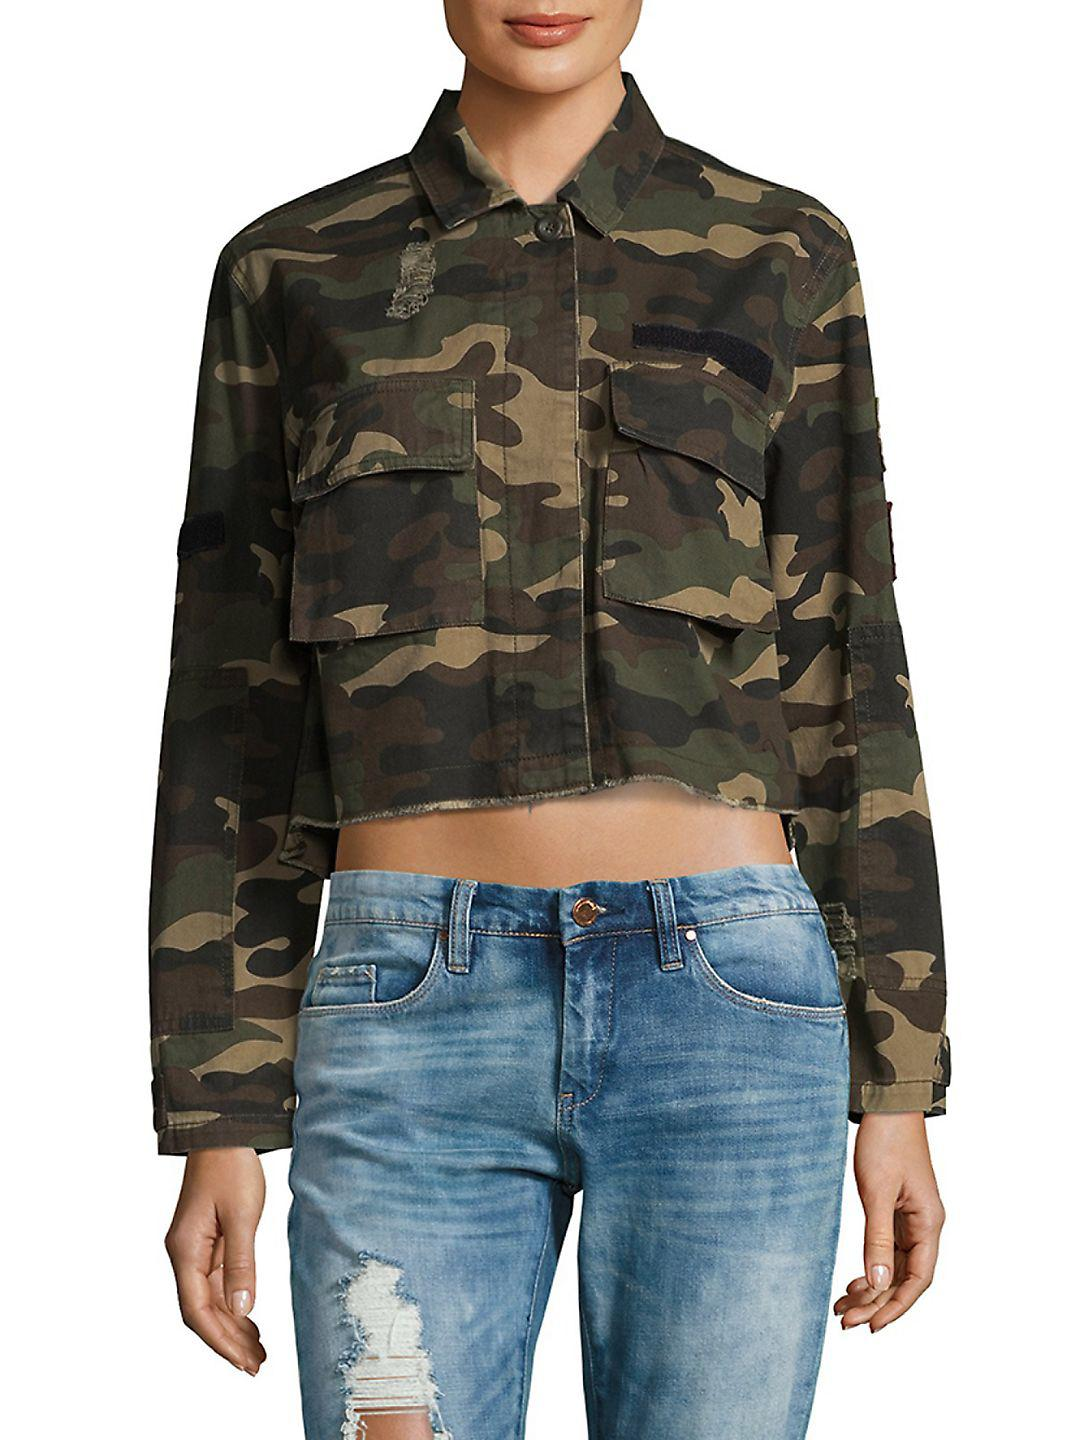 cedc7f3cdd814 Saks Fifth Avenue 2-pocket Camo Cotton Short Jacket in Green - Lyst